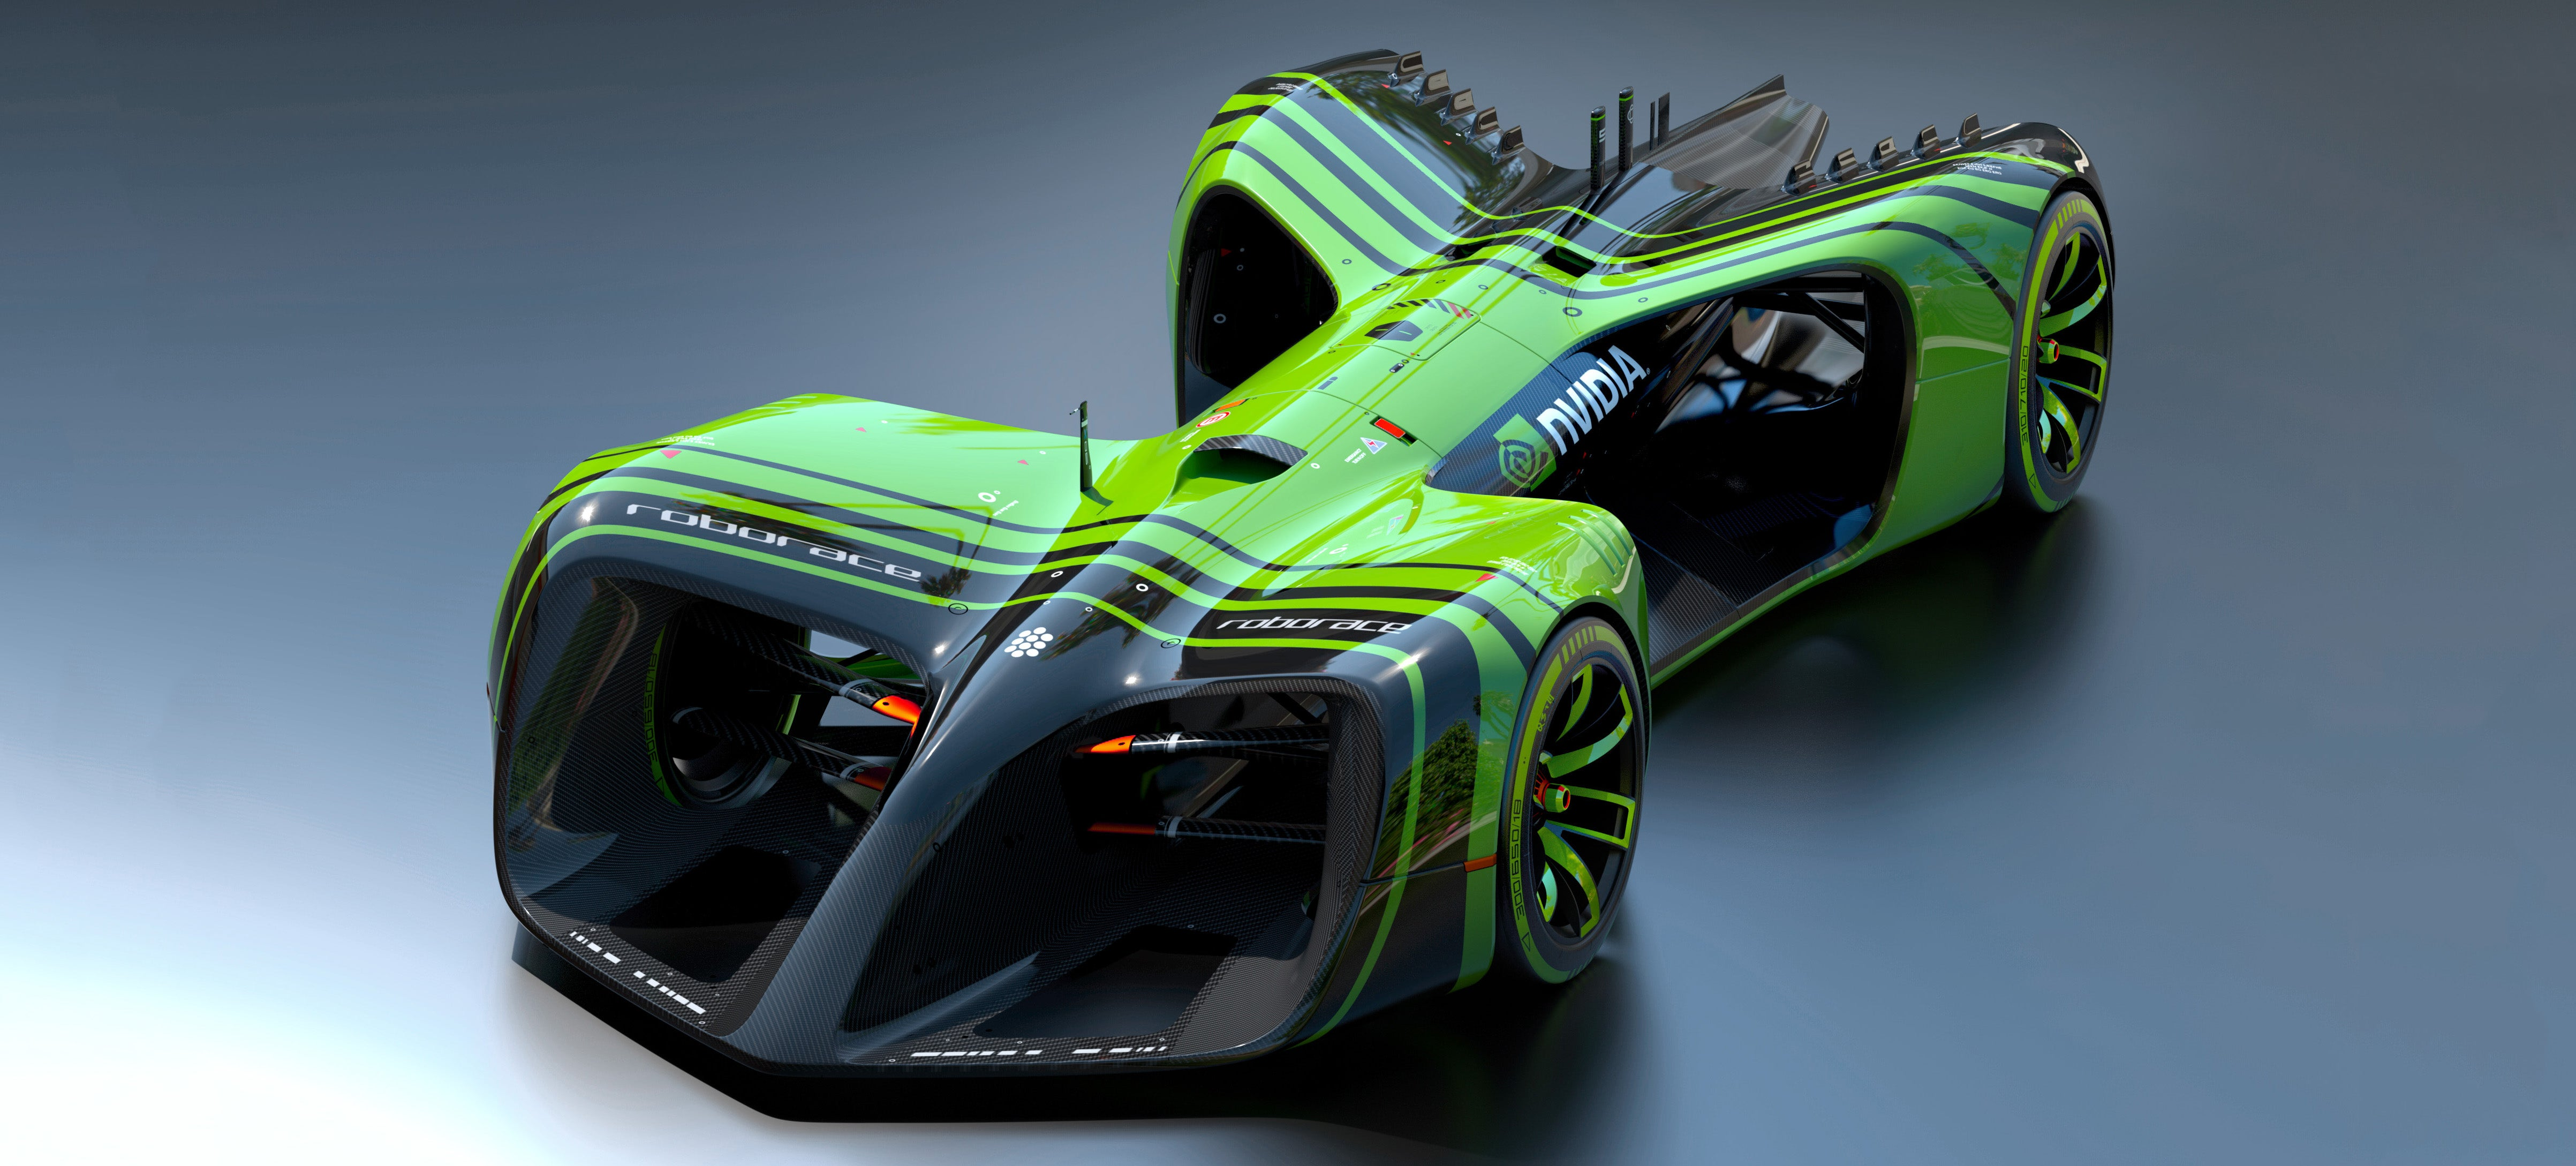 The Roborace Cars Will Use Nvidia Computers ToMake 24 Trillion AI Operations A Second